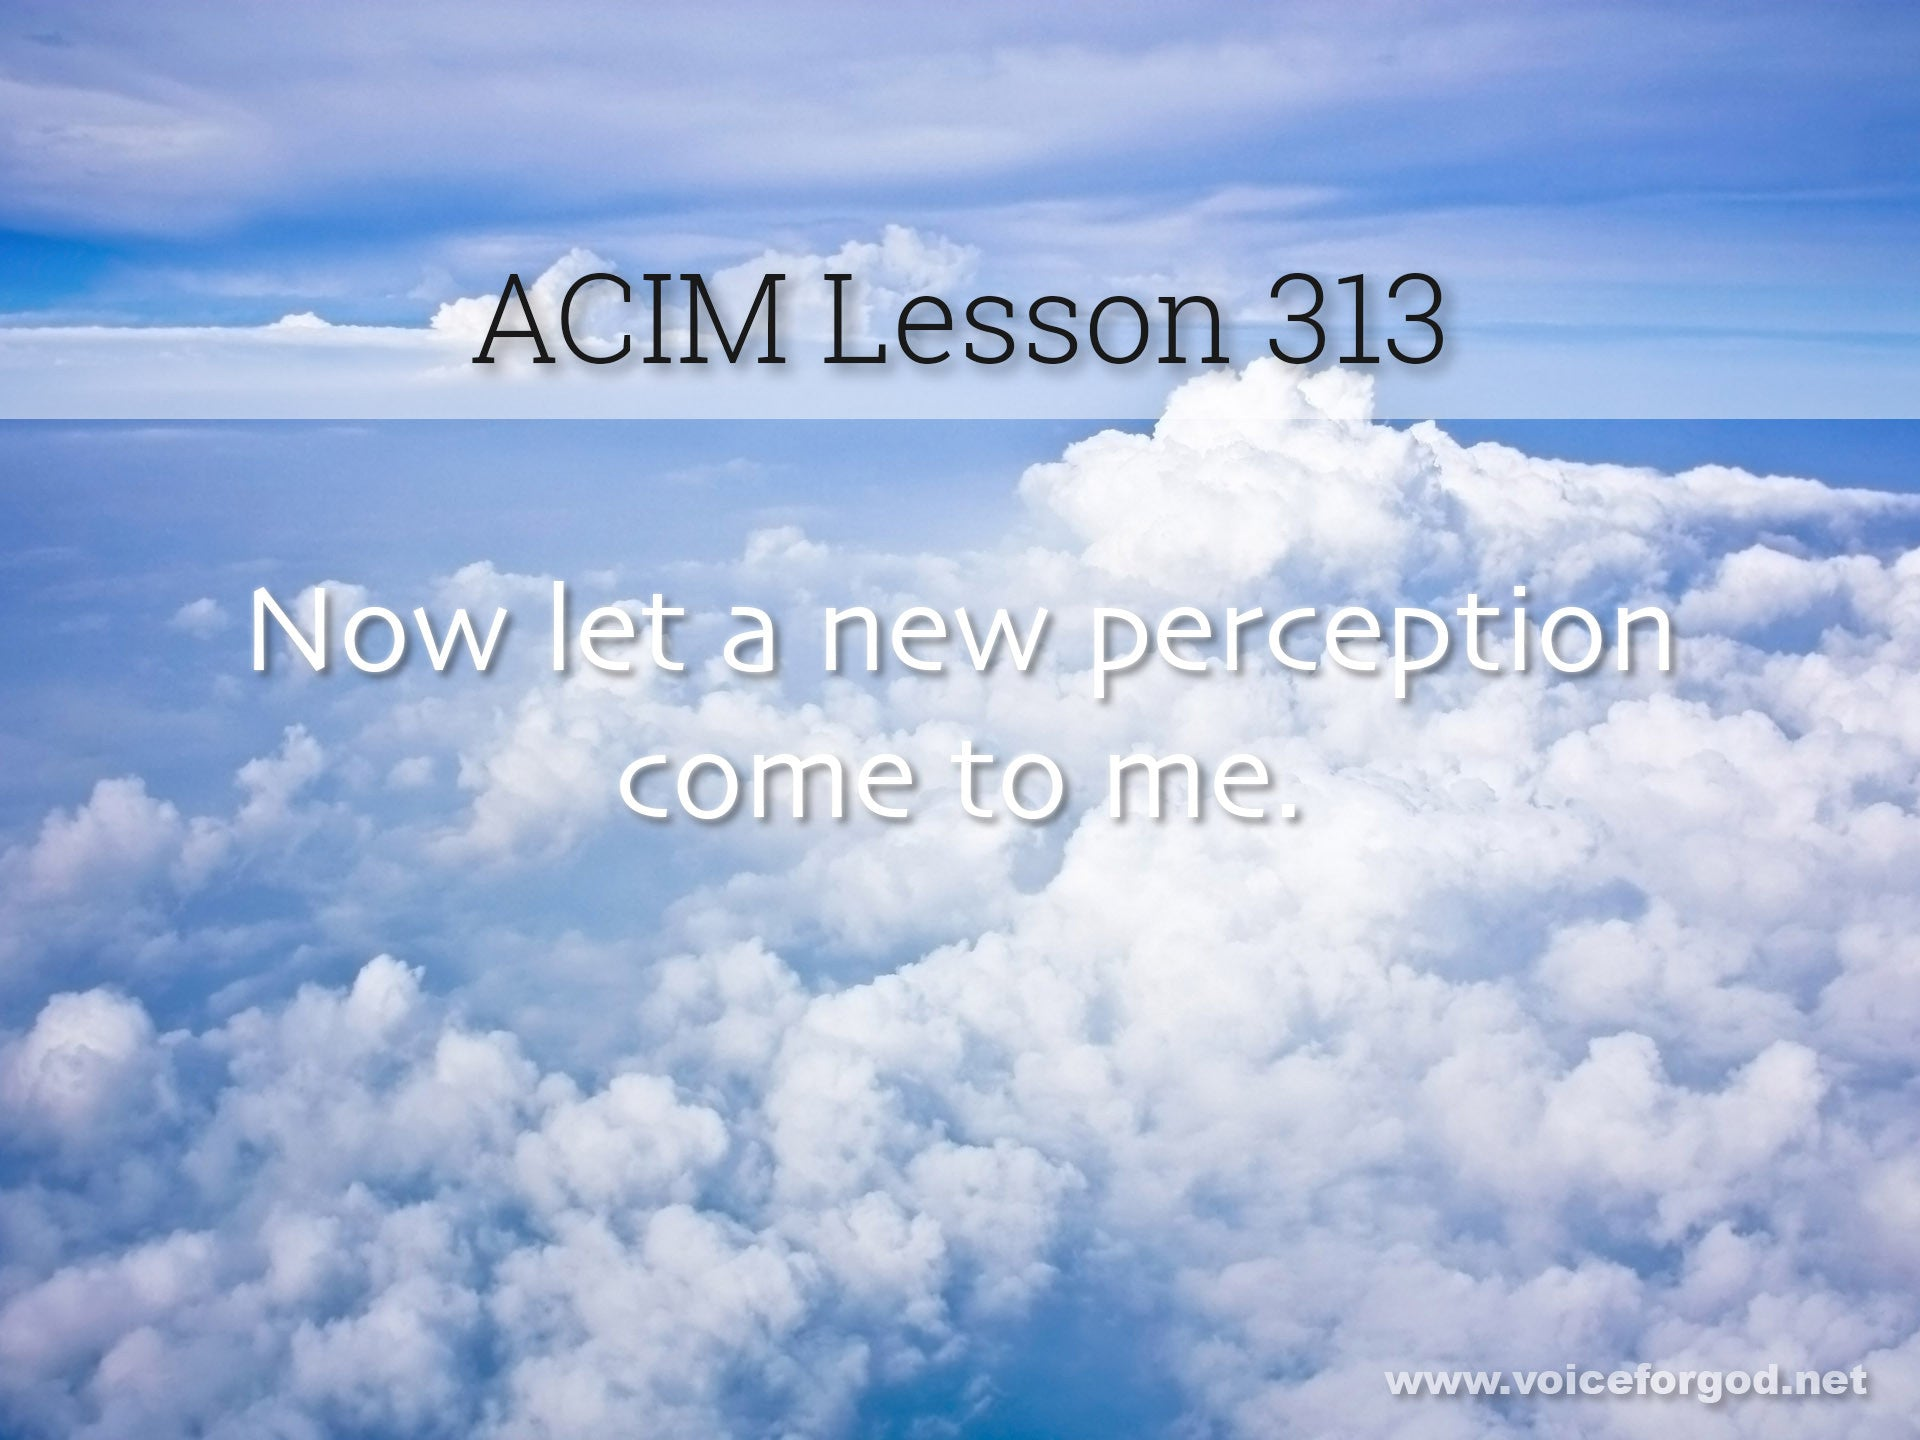 ACIM Lesson 313 - A Course in Miracles Workbook Lesson 313